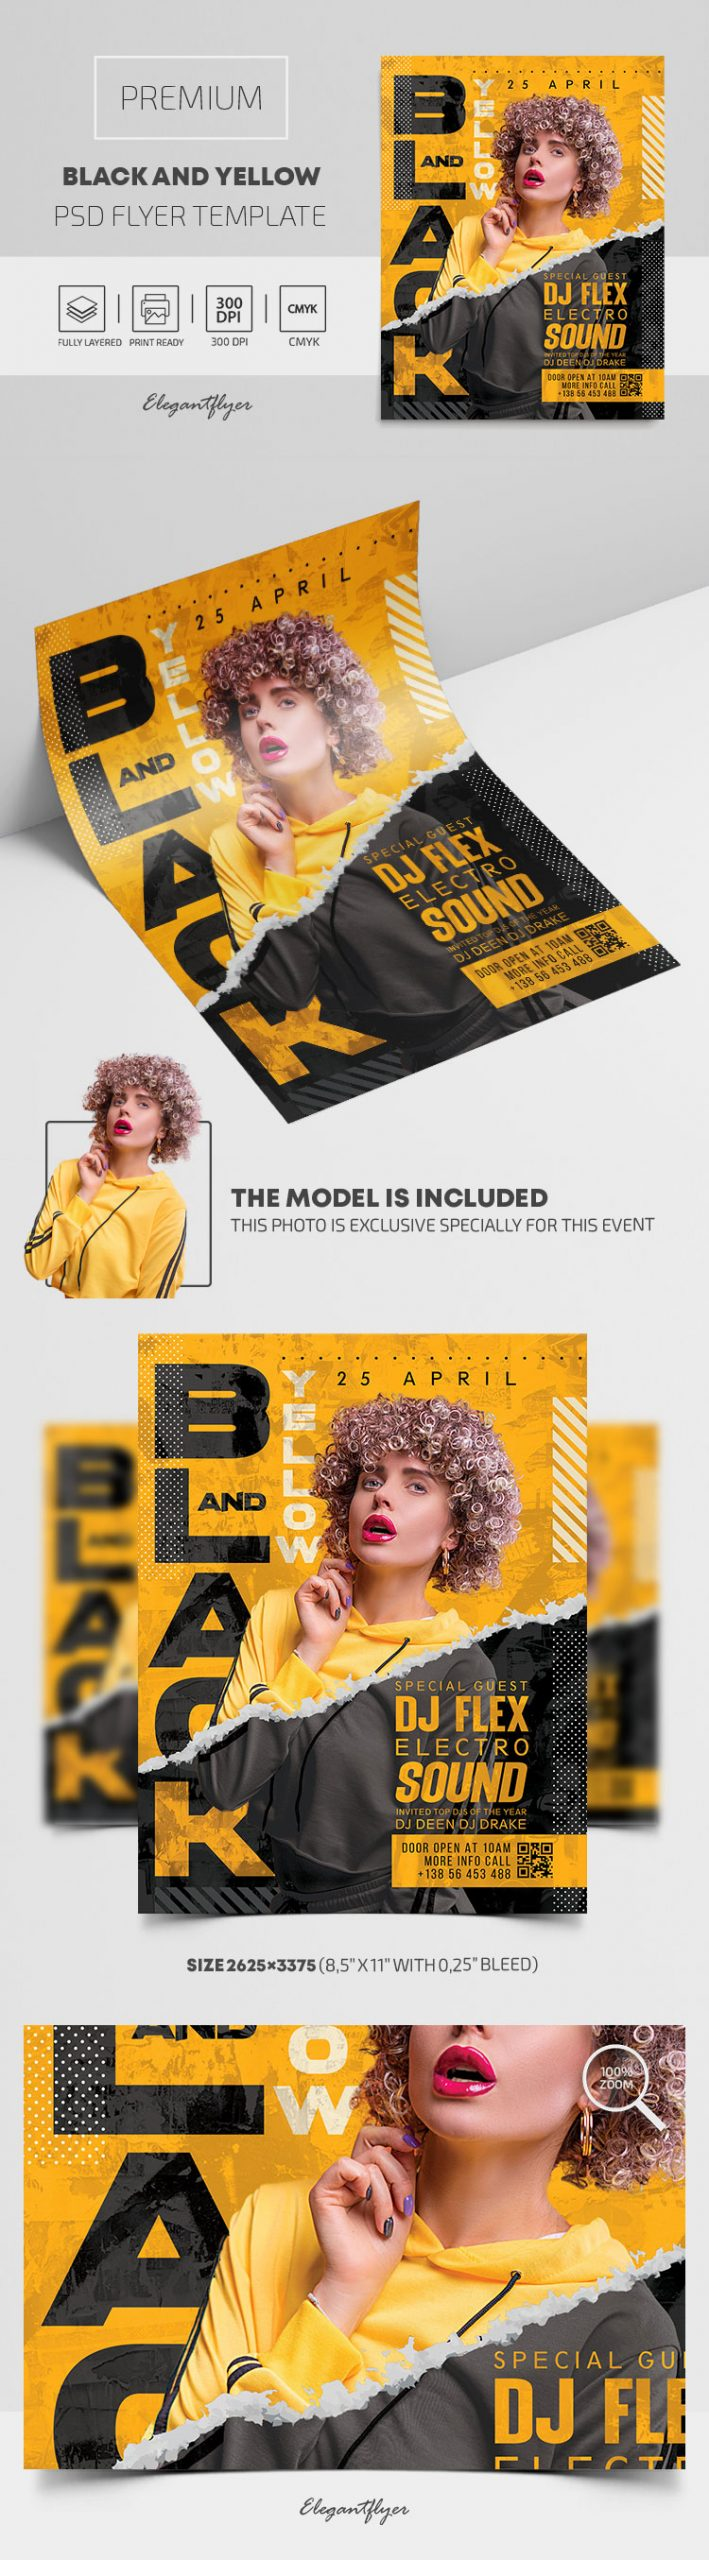 Black and Yellow – Premium PSD Flyer Template